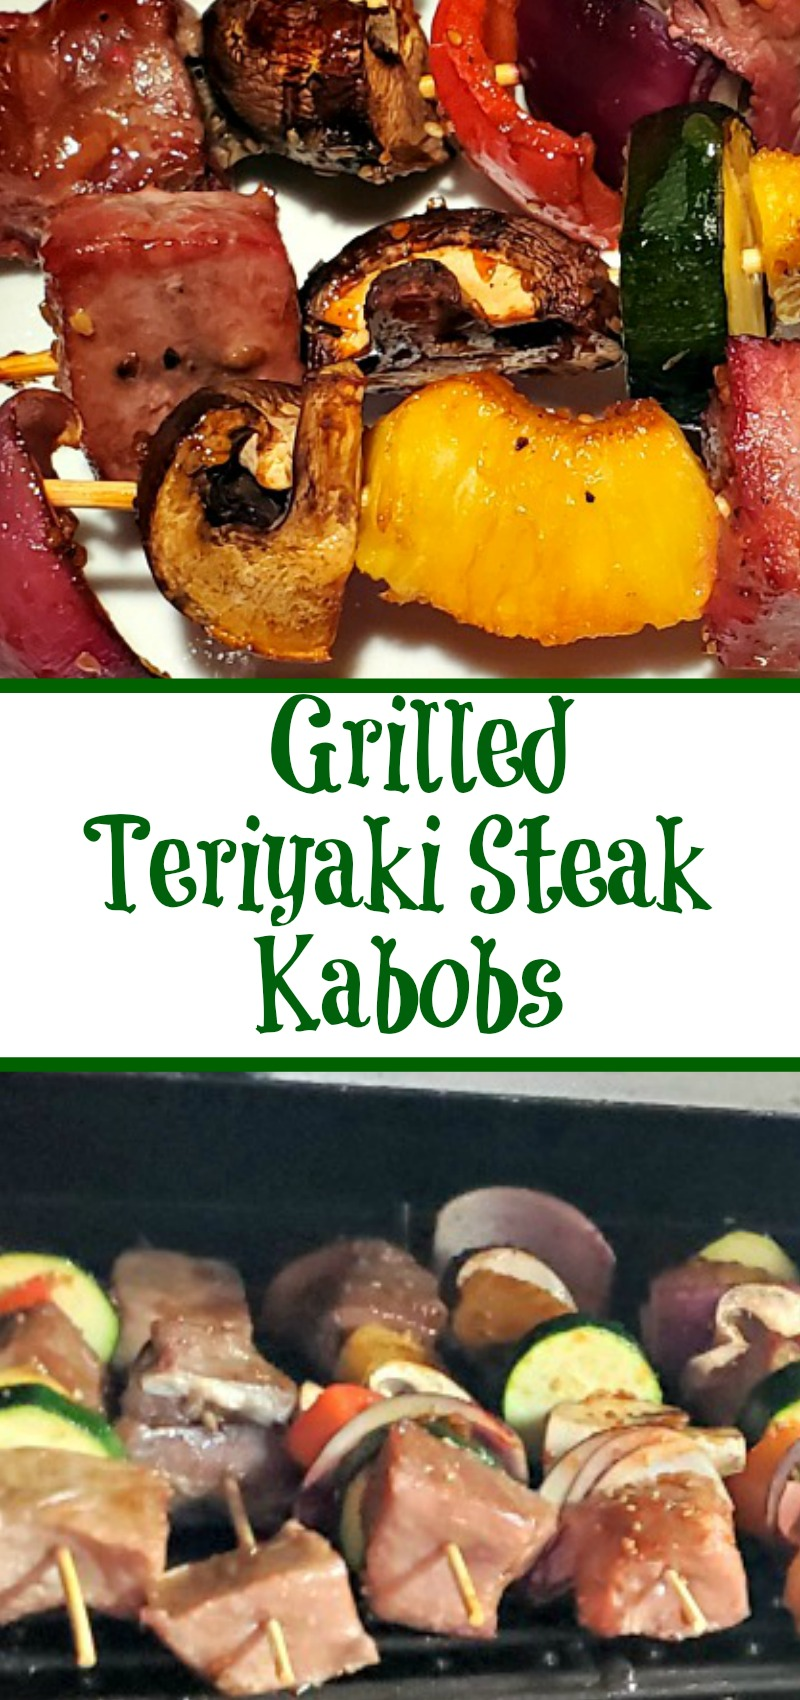 This Easy Grilled Teriyaki Steak Kabobs Recipe is perfect for a weeknight bbq dinner! Just assemble and throw on the grill for an easy dinner!